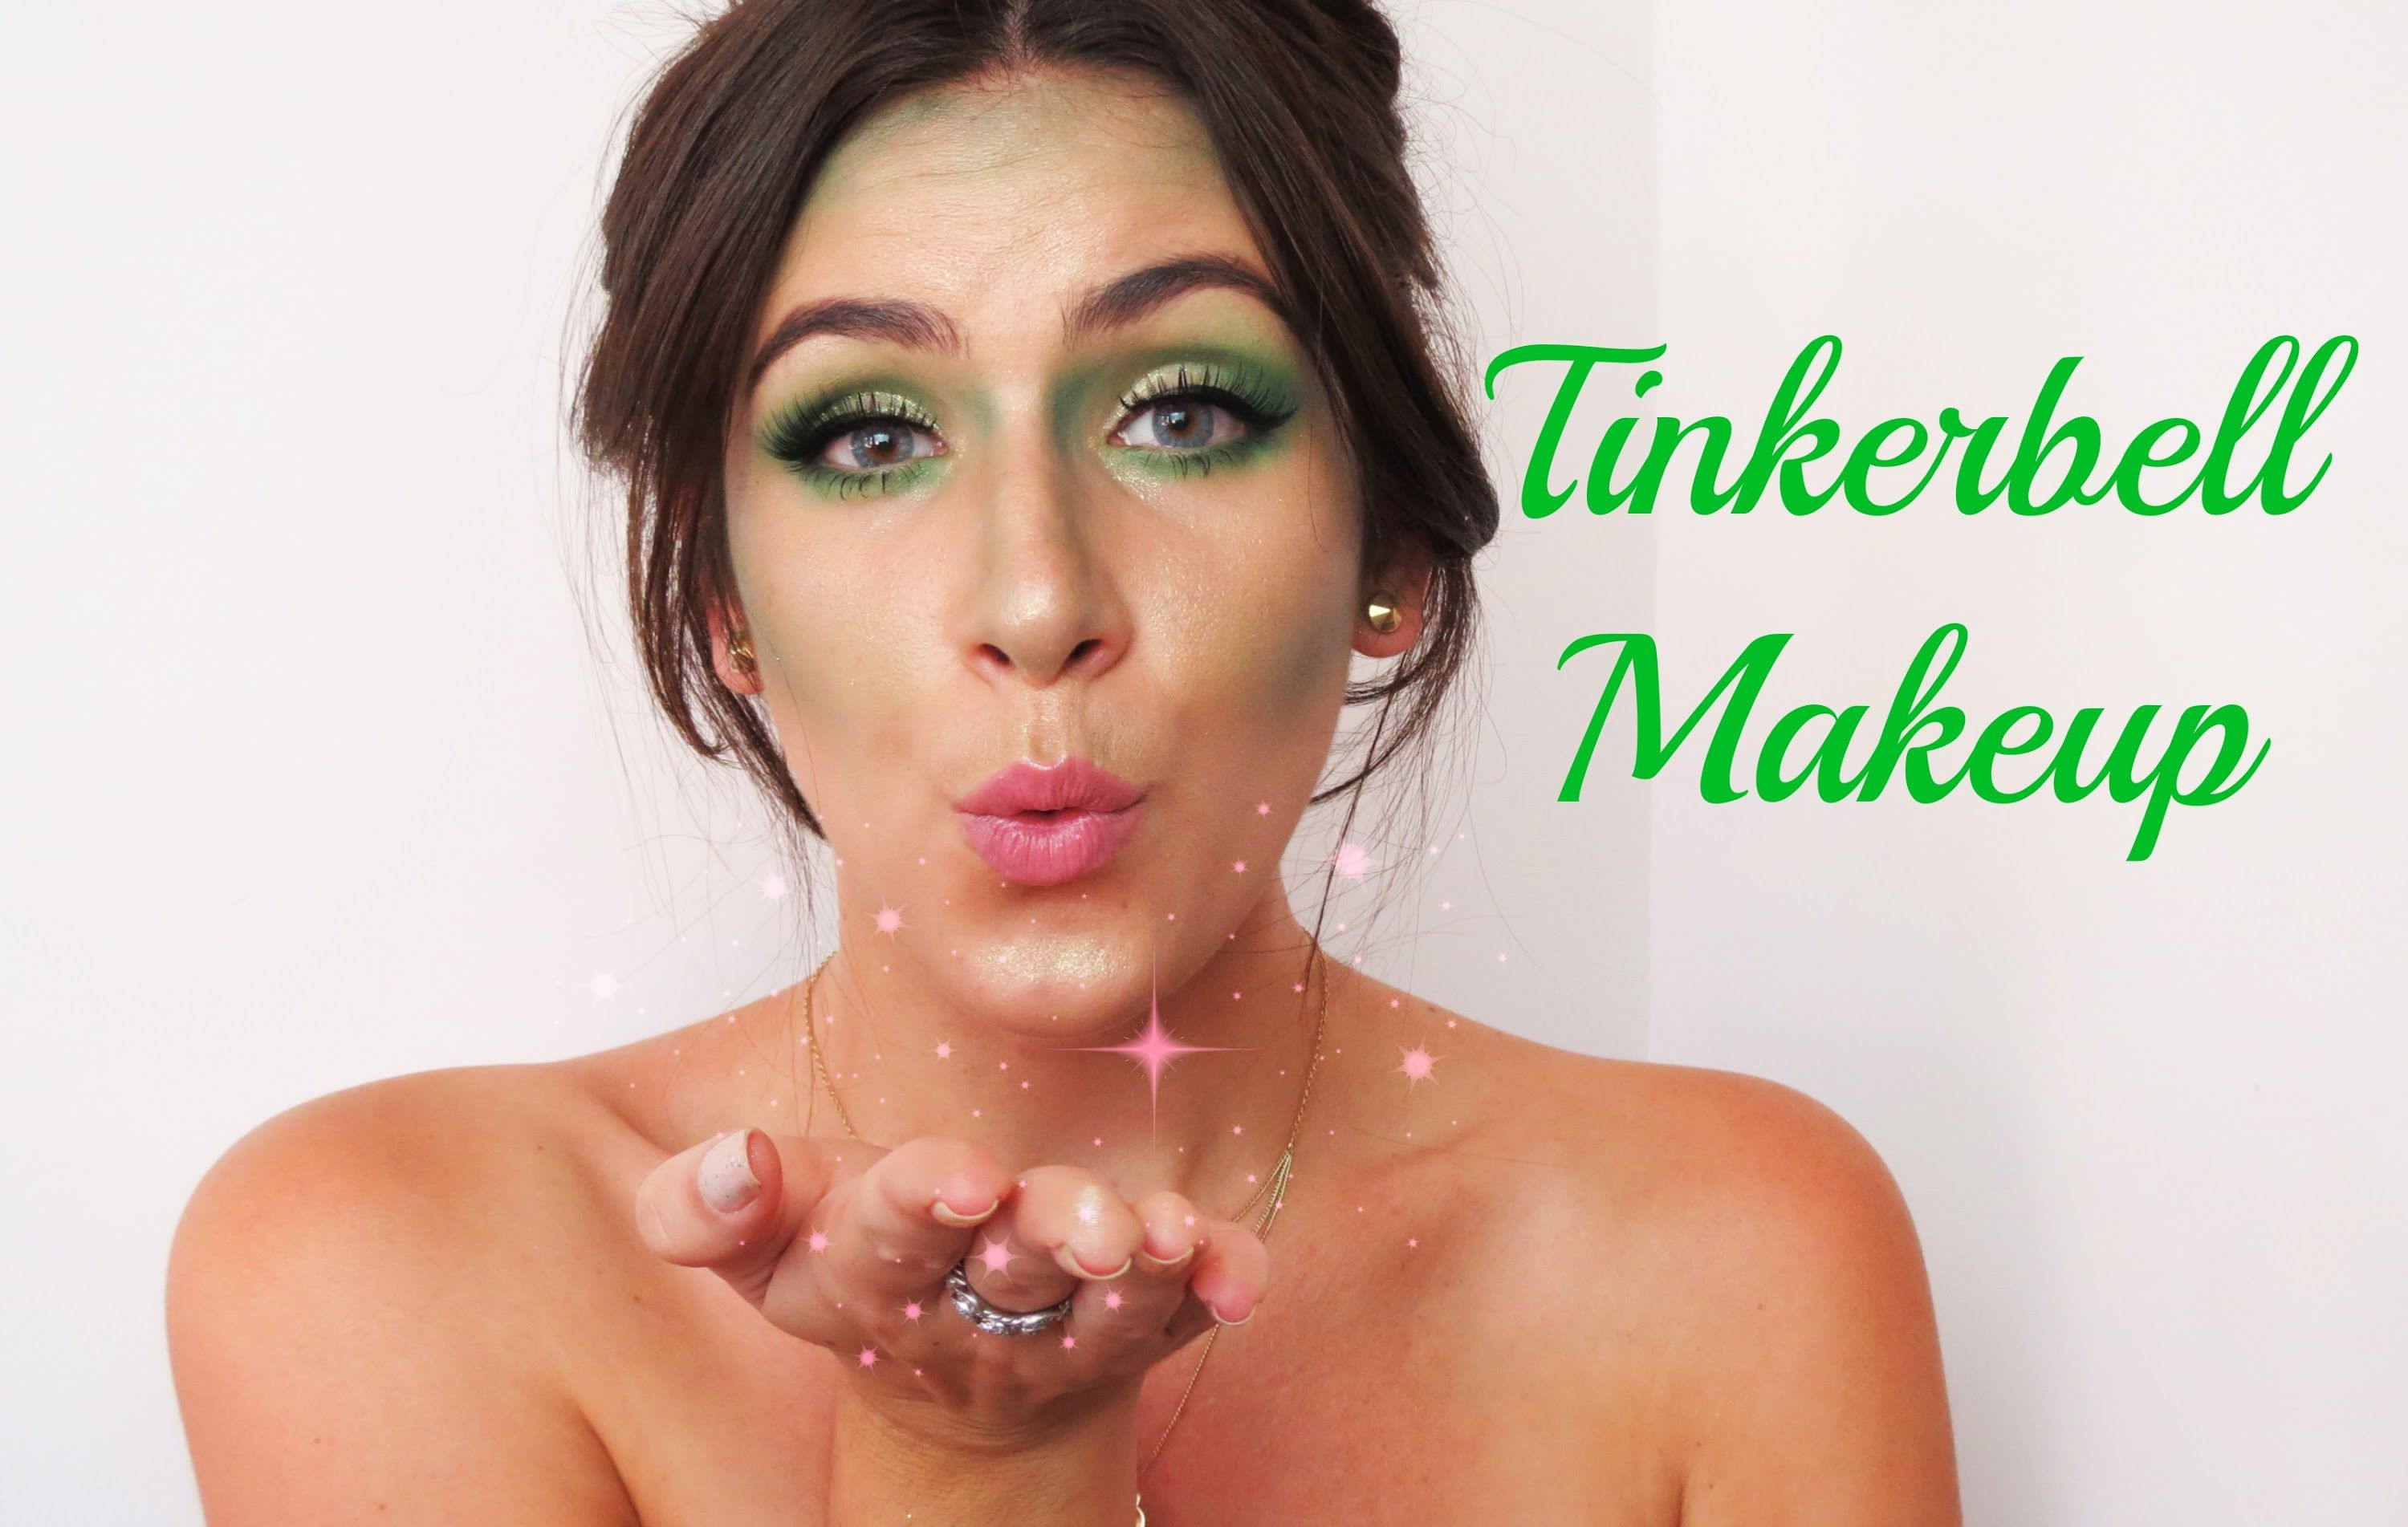 Tinkerbell makeup tutorial youtubeusergraytracyartistry tinkerbell makeup tutorial youtubeusergraytracyartistry subscribe baditri Image collections